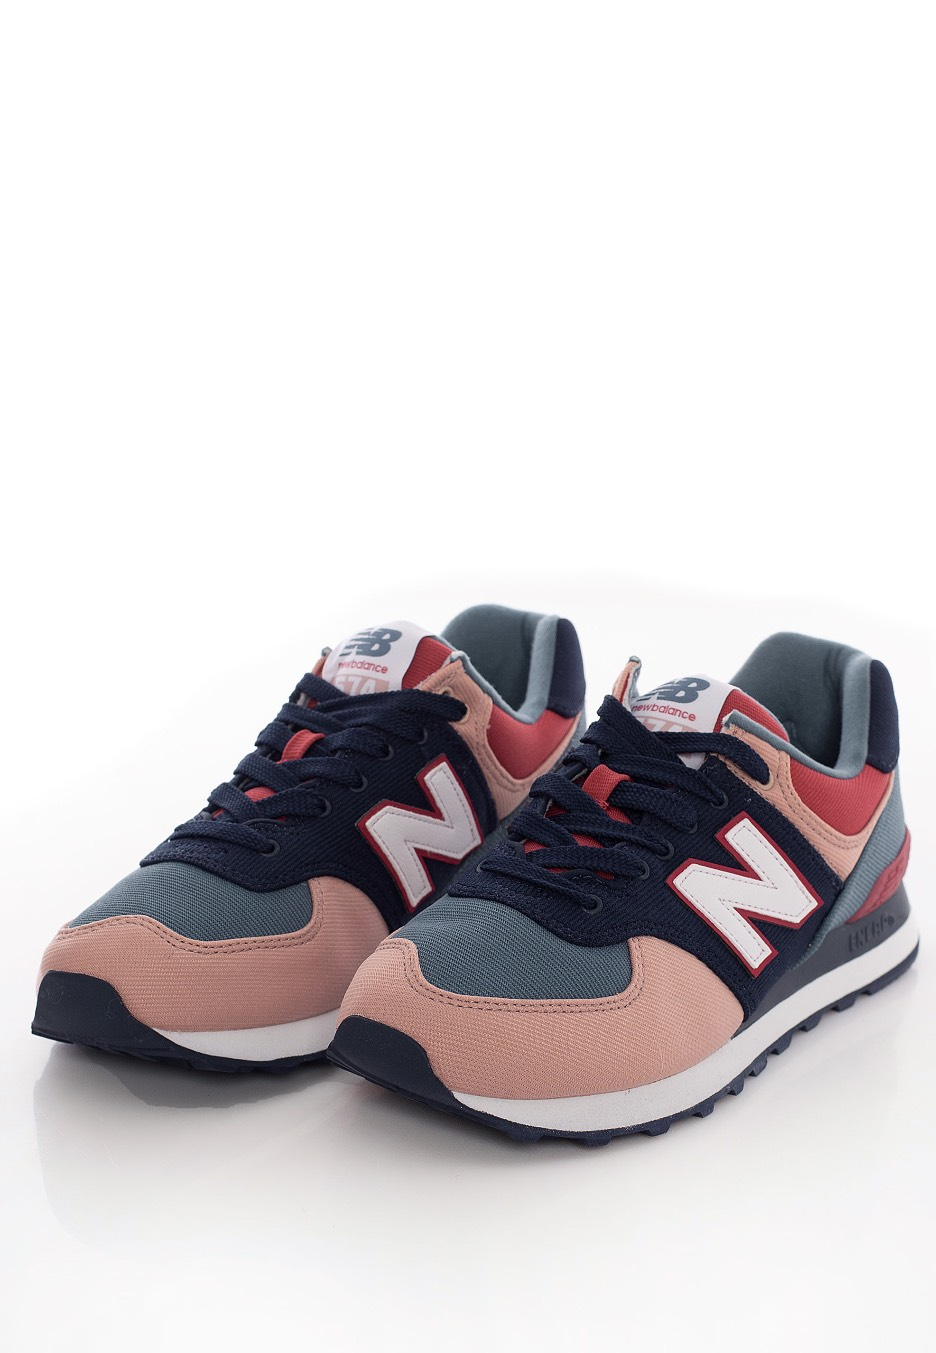 eeffad0f164 newbalance wl574ina lightpetrol girlshoes side lg 1.jpg